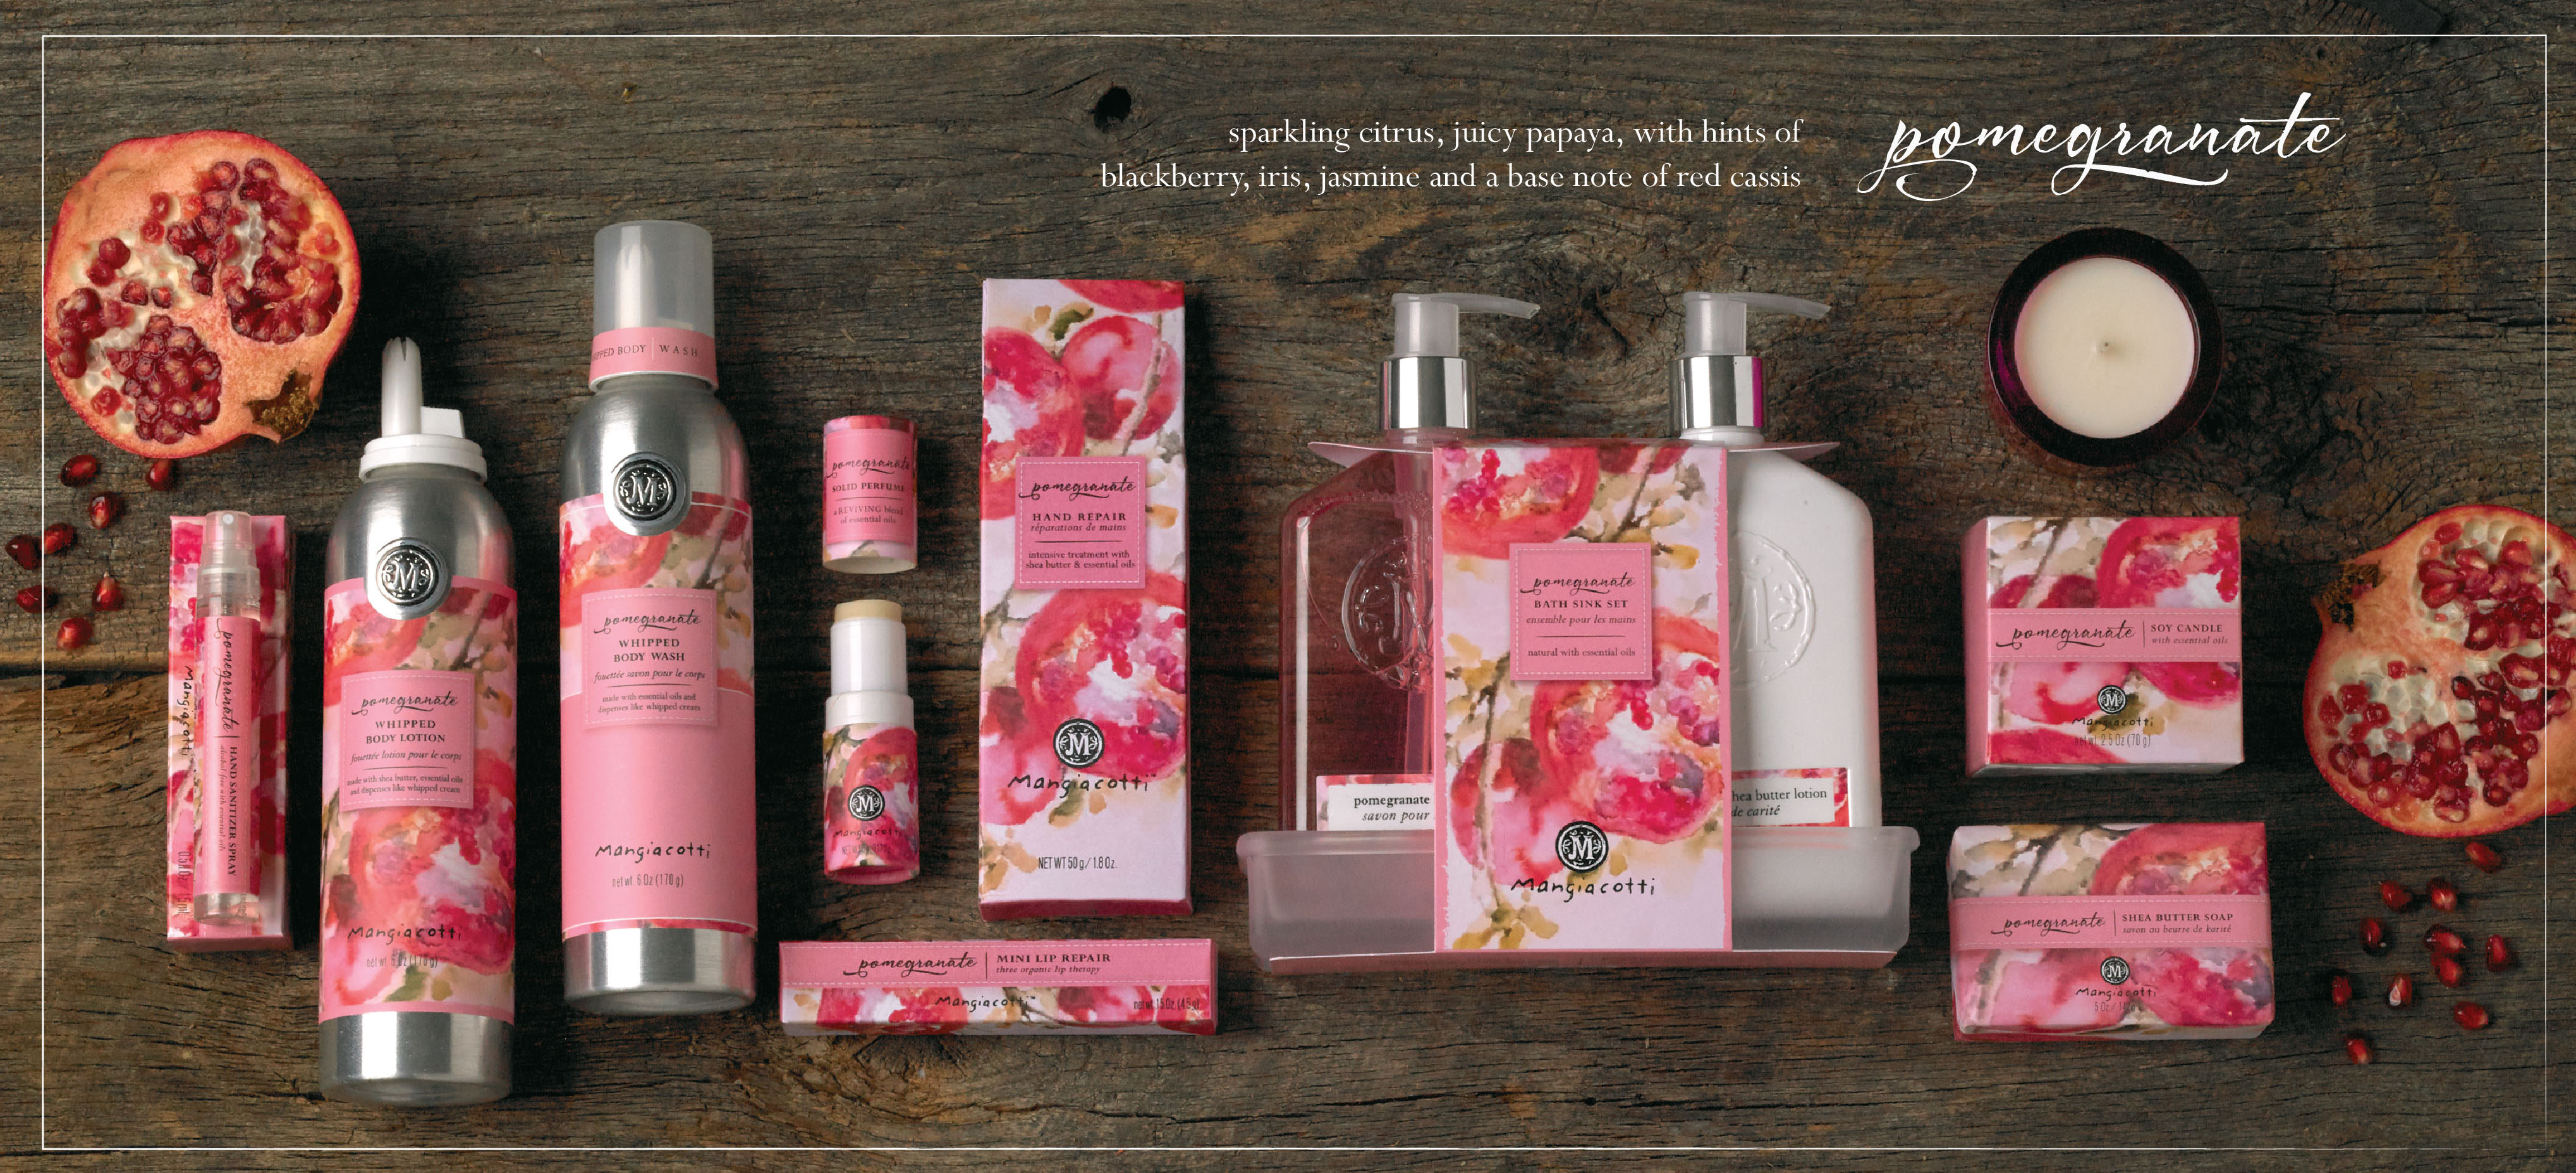 pomegranate-web-fragrance-banner-2020.jpg